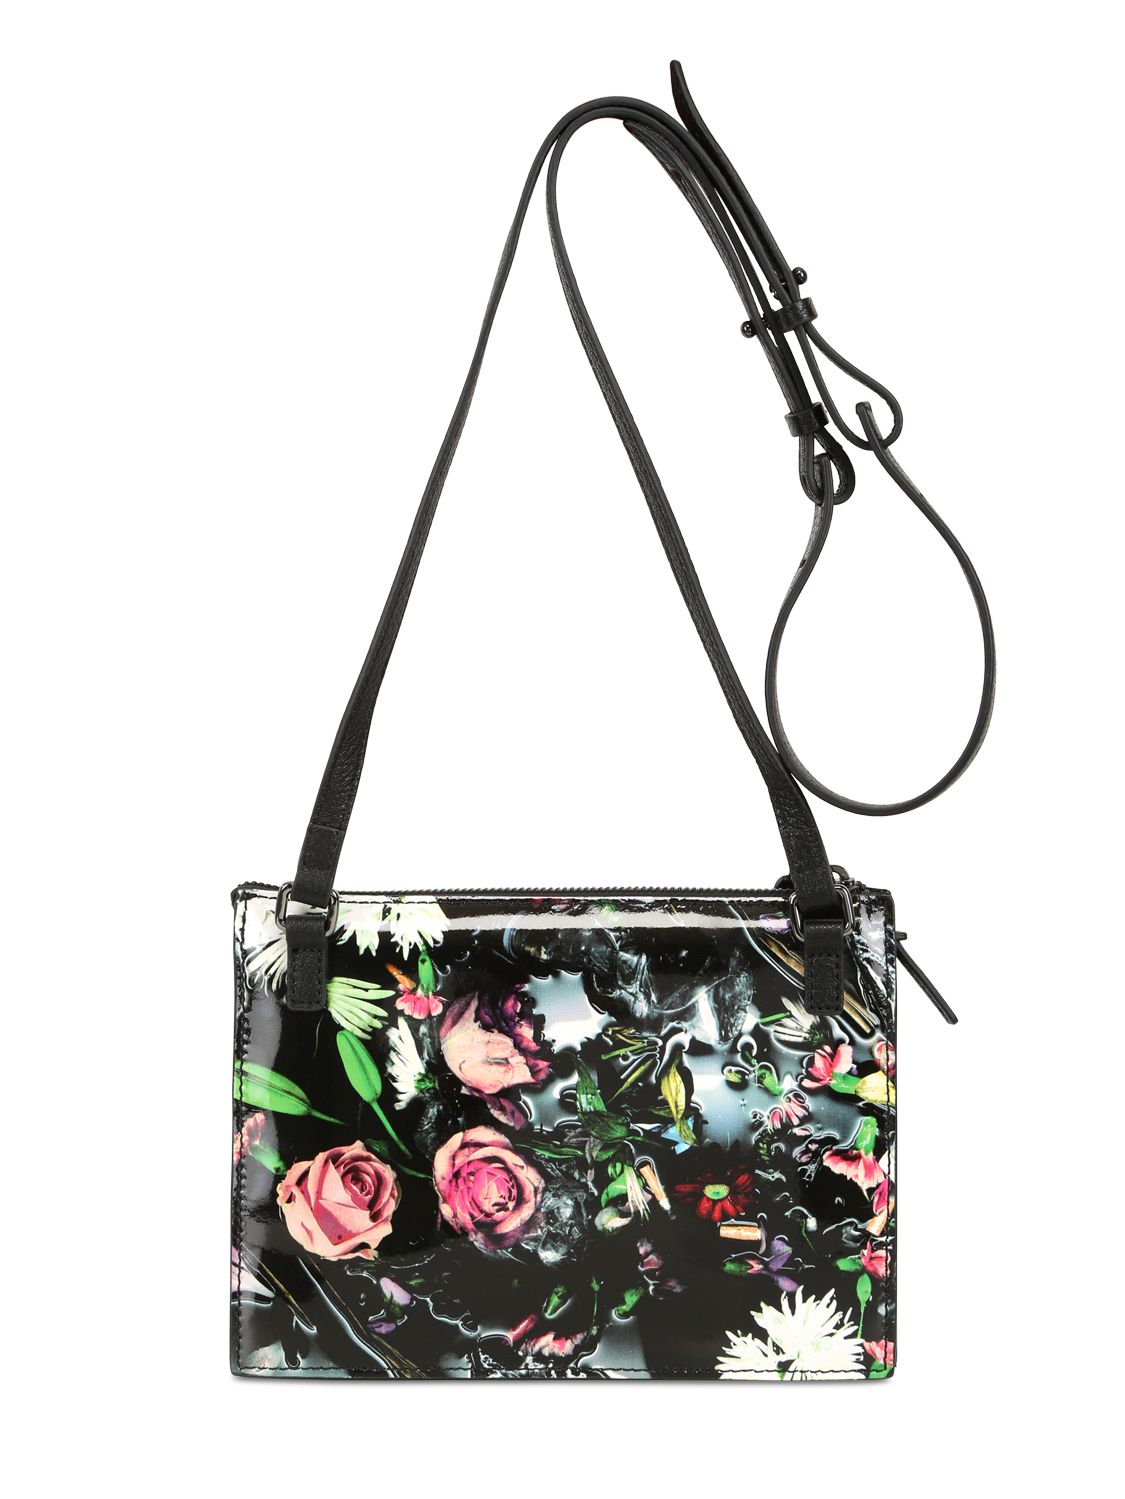 a9213d5aedc3 Lyst - McQ Floral Printed Leather Shoulder Bag in Black